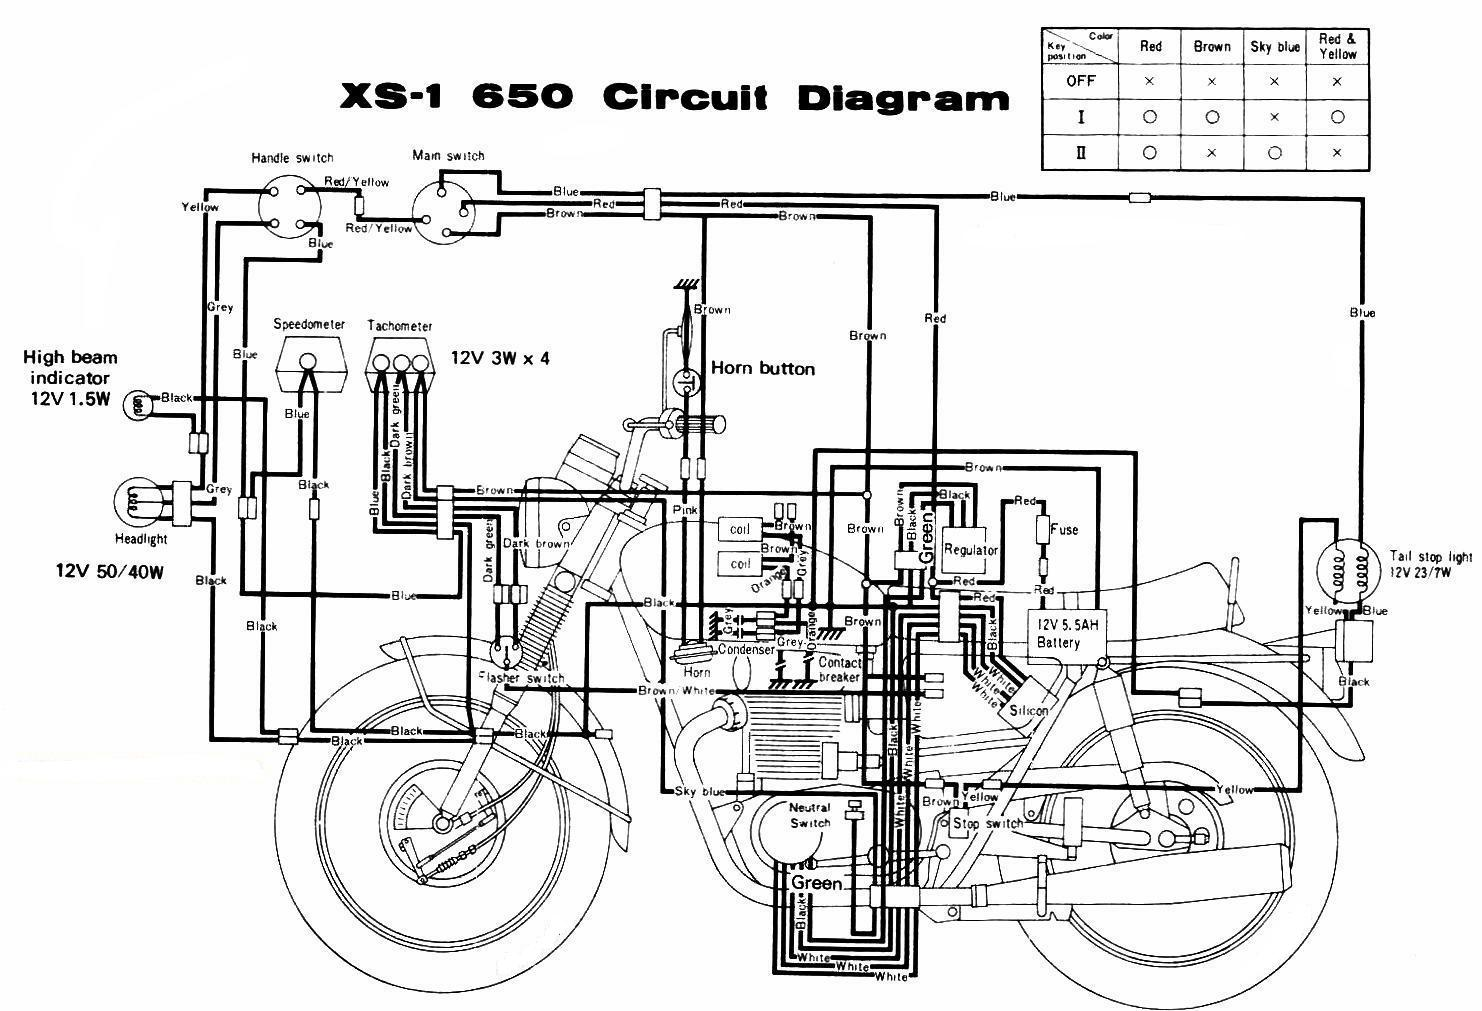 Wiring Diagrams Rd350 Regulator Rectifier Diagram 1970 Xs1 Page 1